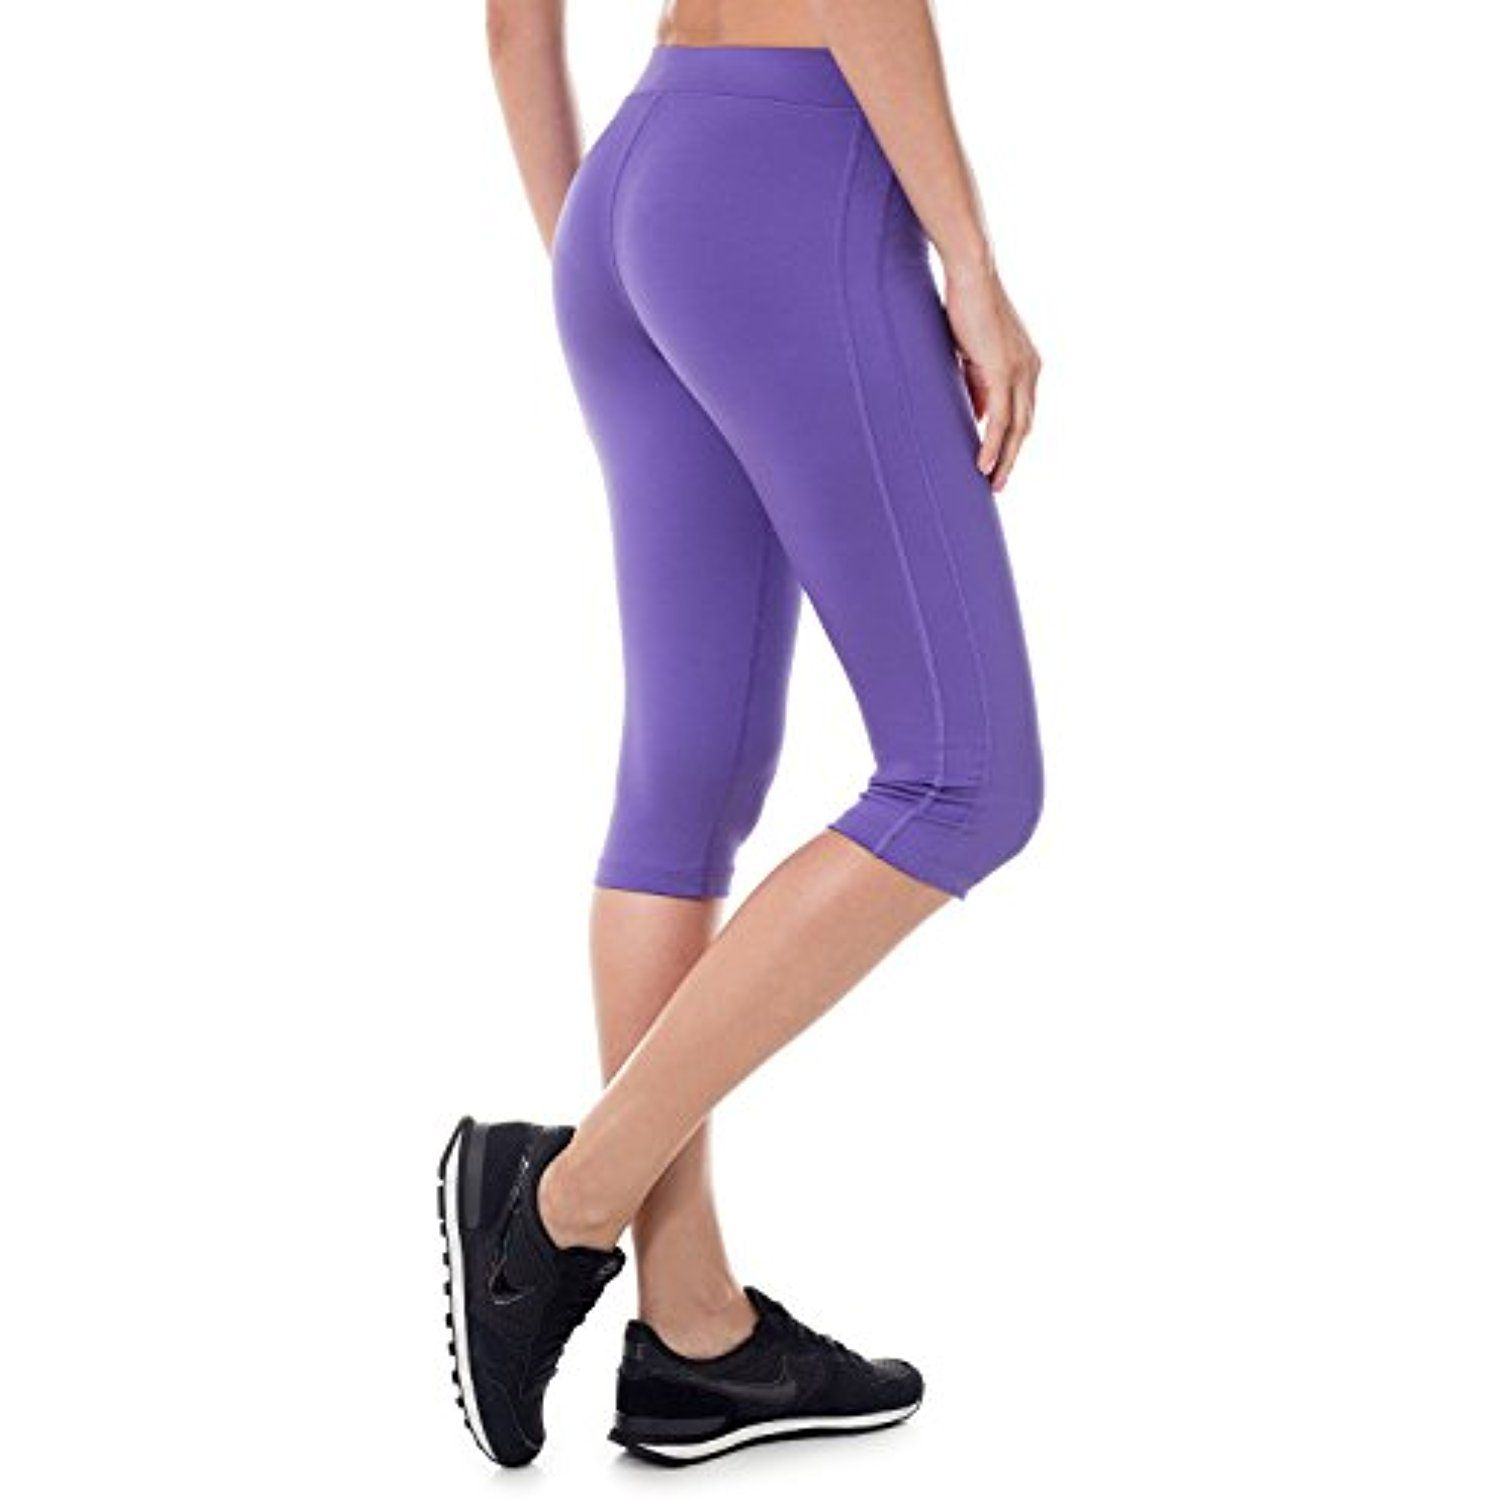 e4687dee206fc SYROKAN Women s Tights Active Athletic Yoga Running Sports Capris Leggings     Click image for more details. (This is an affiliate link)  Running